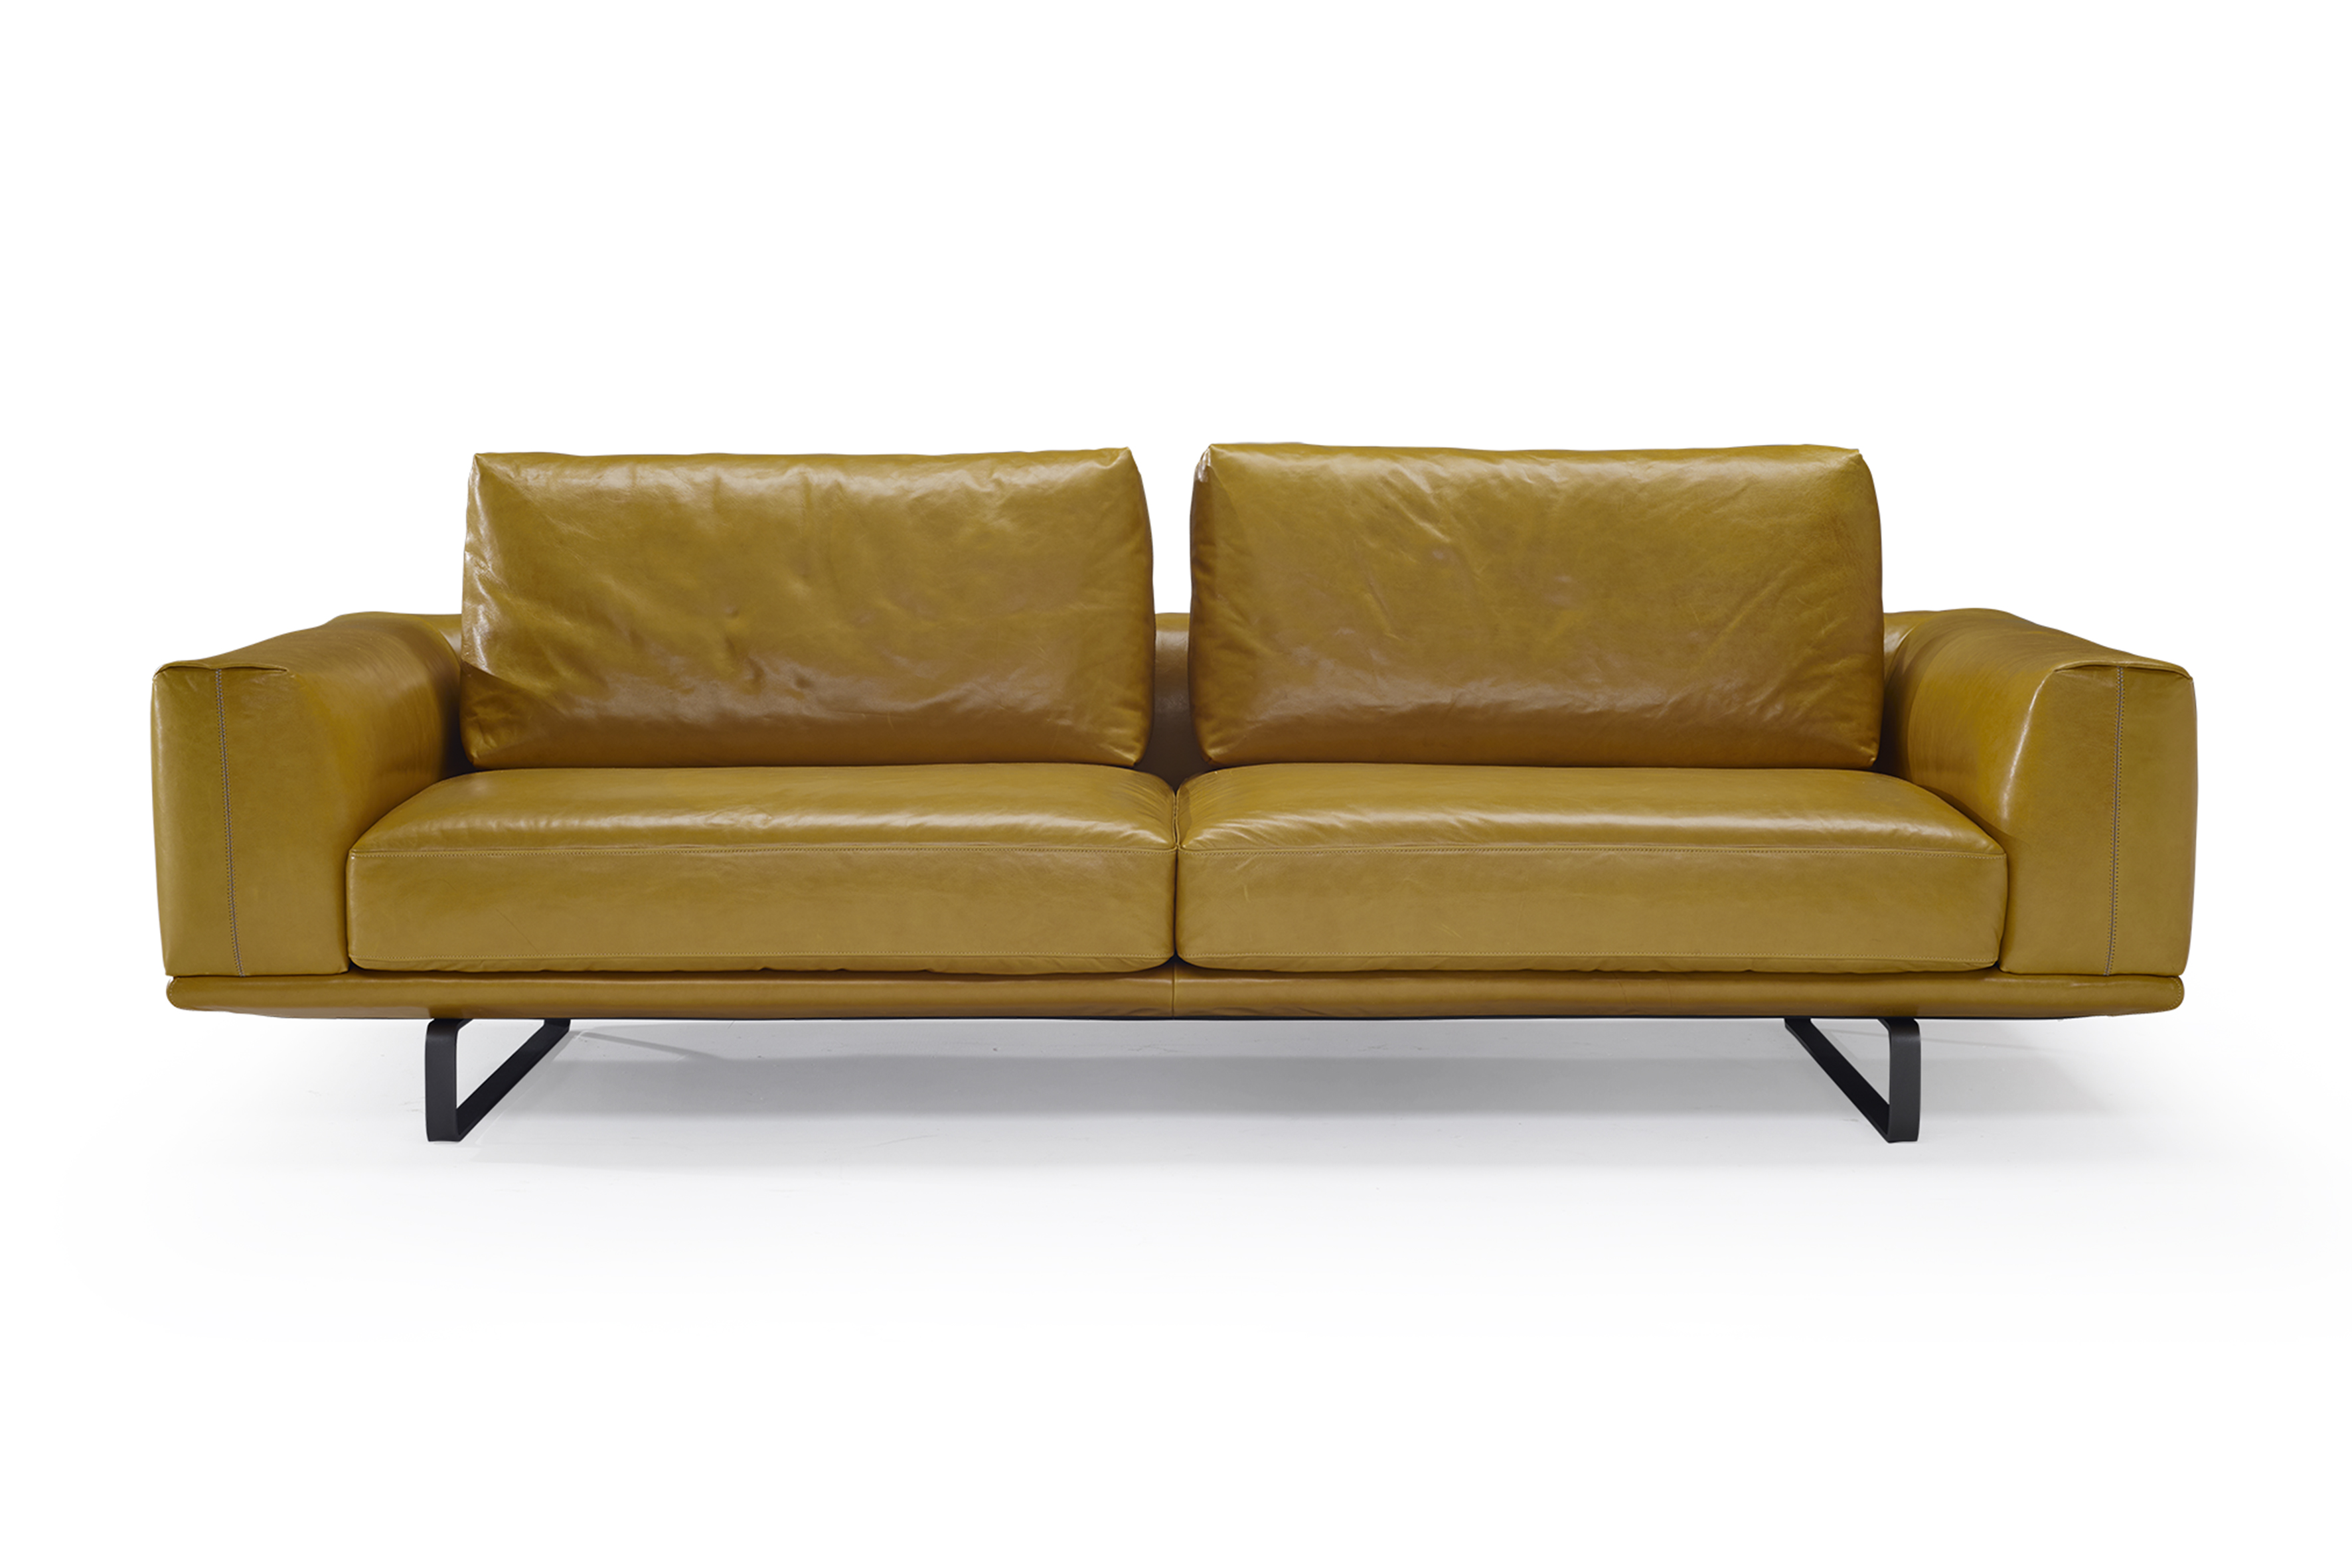 sofa stores edinburgh flexsteel sleeper for rv natuzzi in store black friday sale house of coco